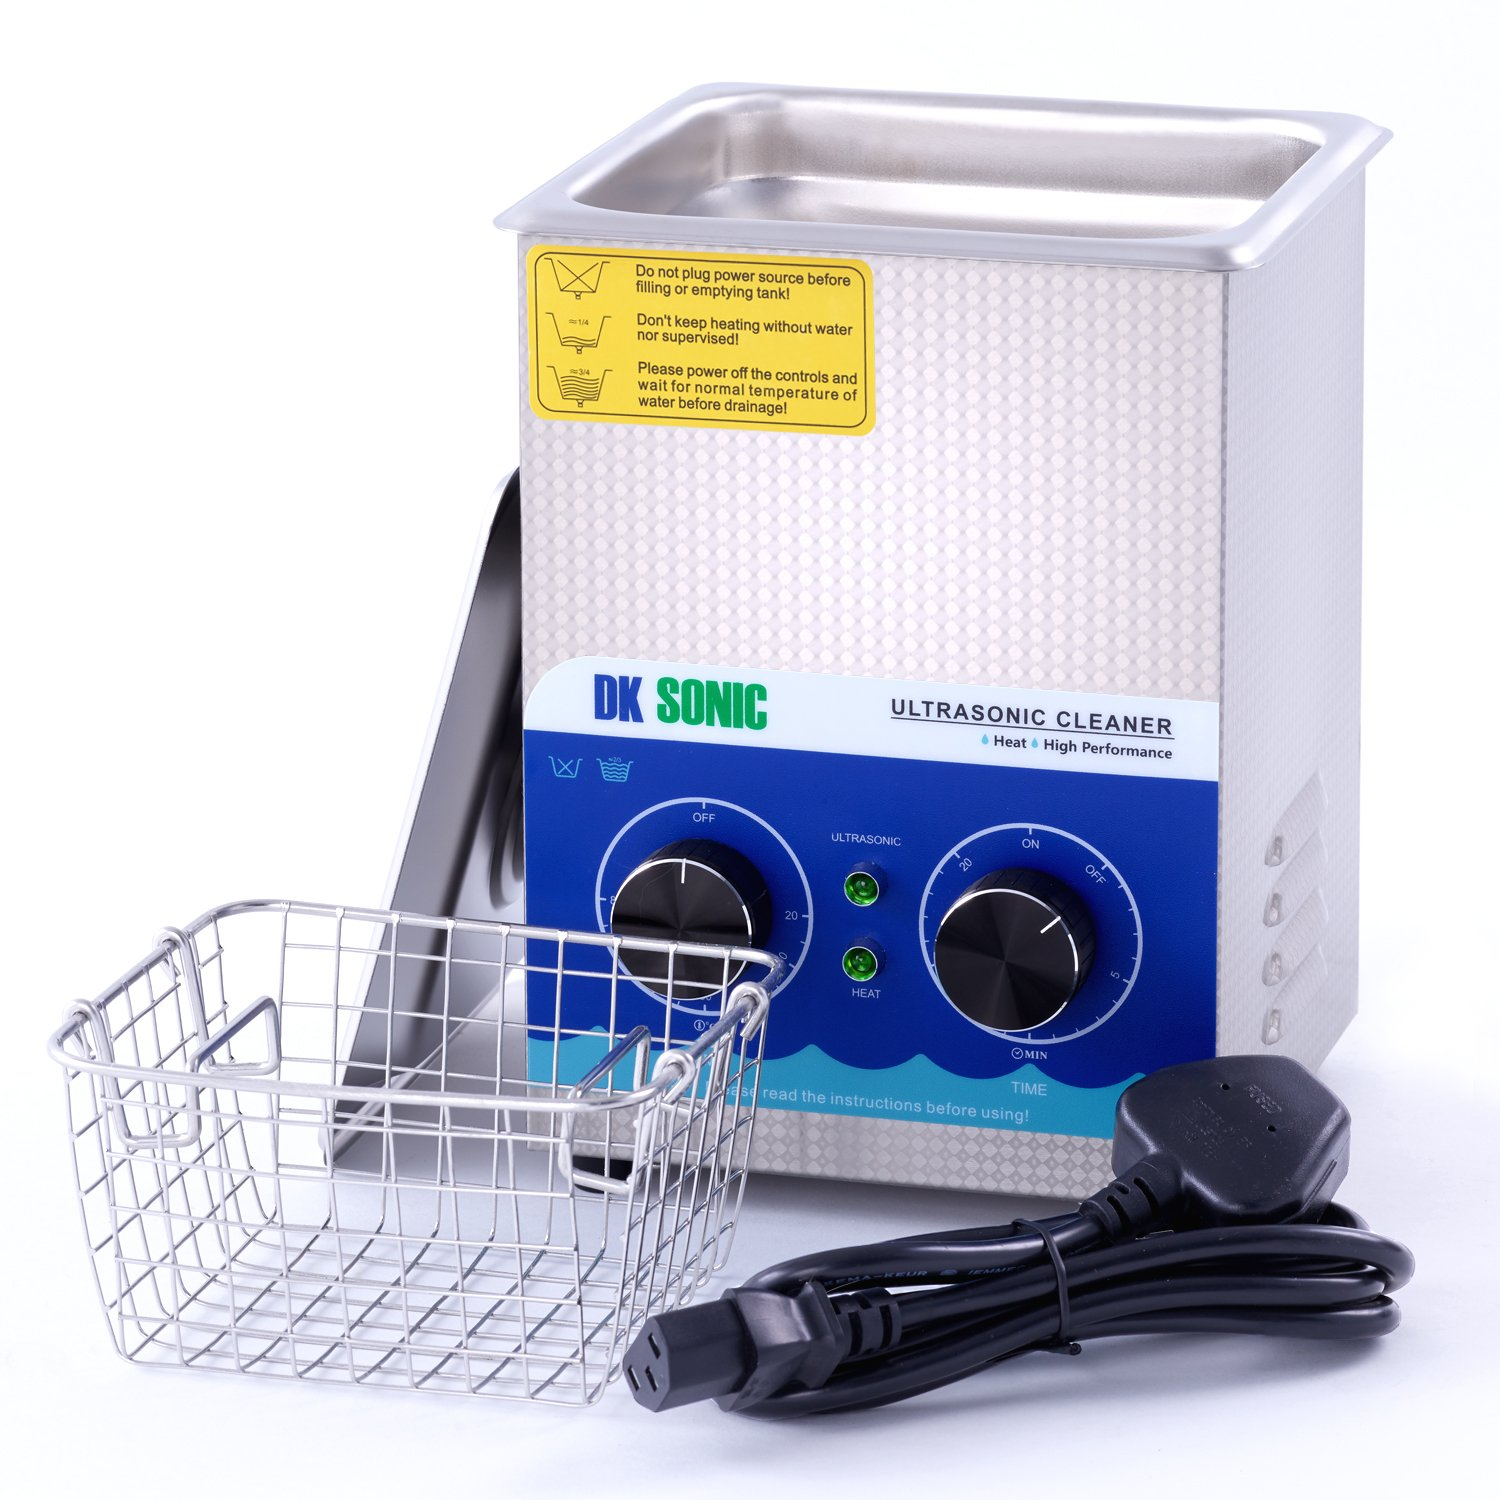 Commercial Ultrasonic Cleaner-DK SONIC 2L 60W Sonic Cleaner with Heater Basket for Jewelry, Ring, Eyeglasses, Denture, Watchband, Coins, Small Metal Parts, Circuit Board etc